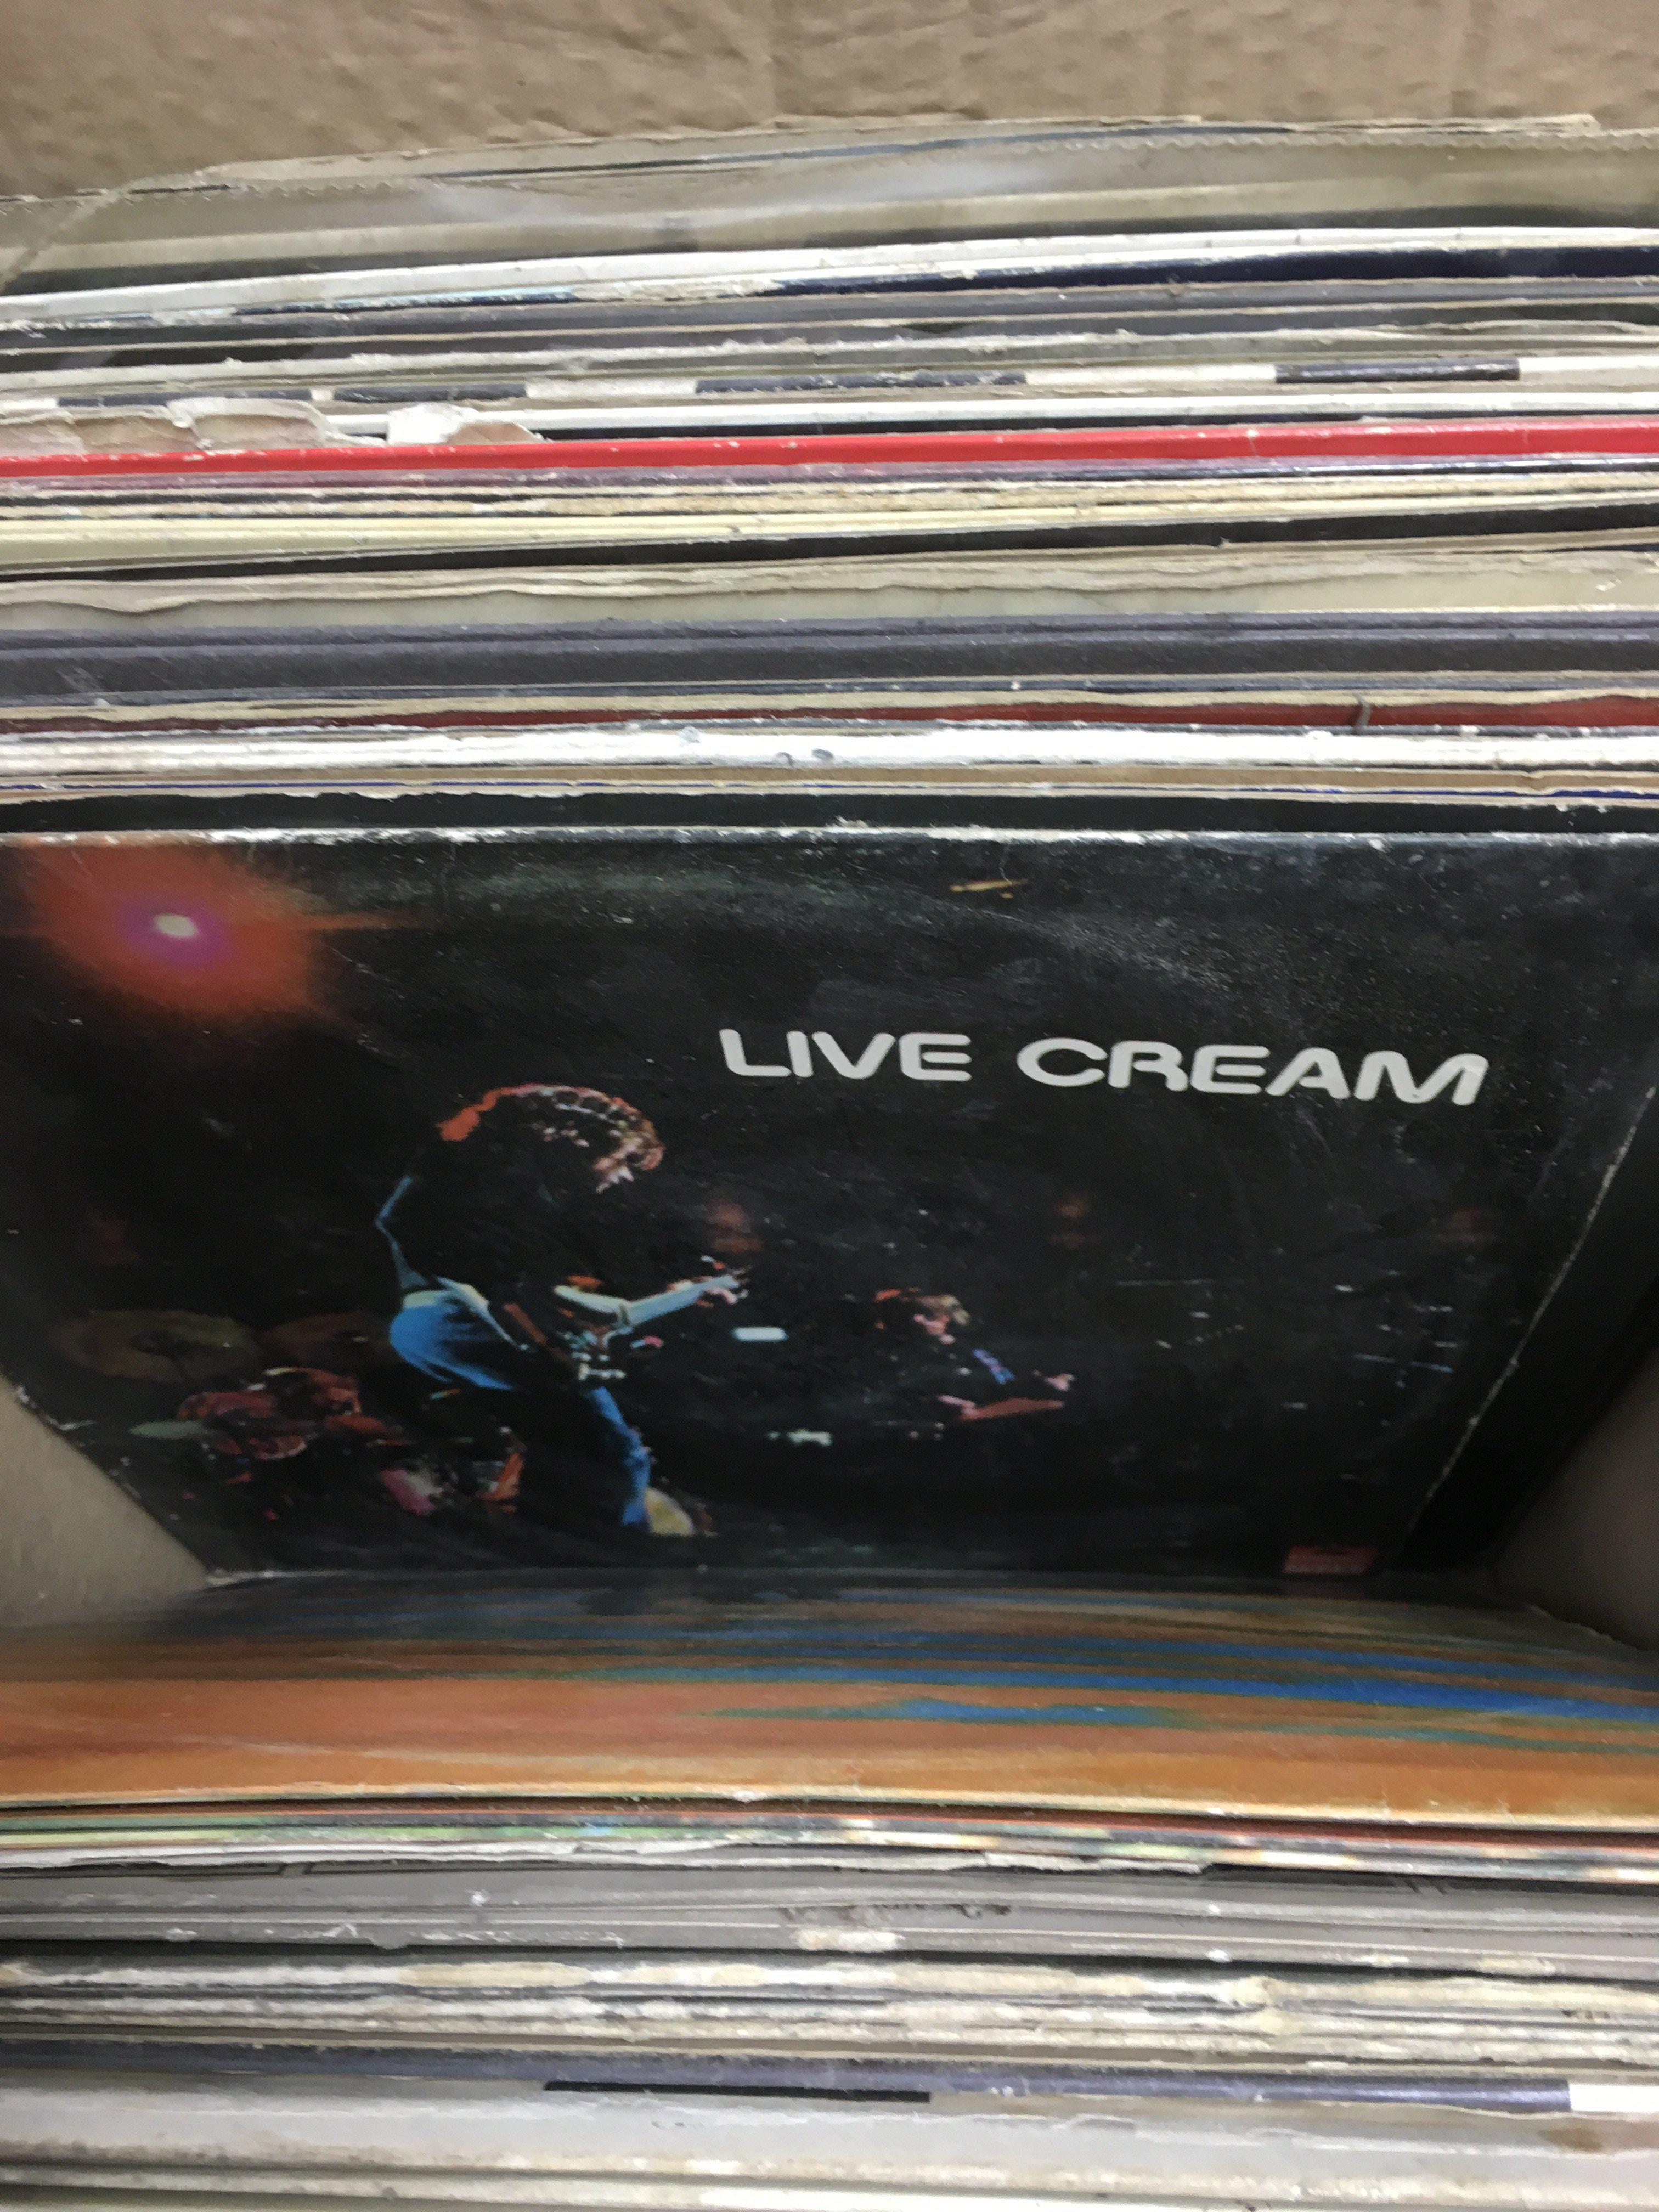 Lot 1854 - A collection of LPs and 7inch singles by various artists including Pink Floyd, Canned Heat and